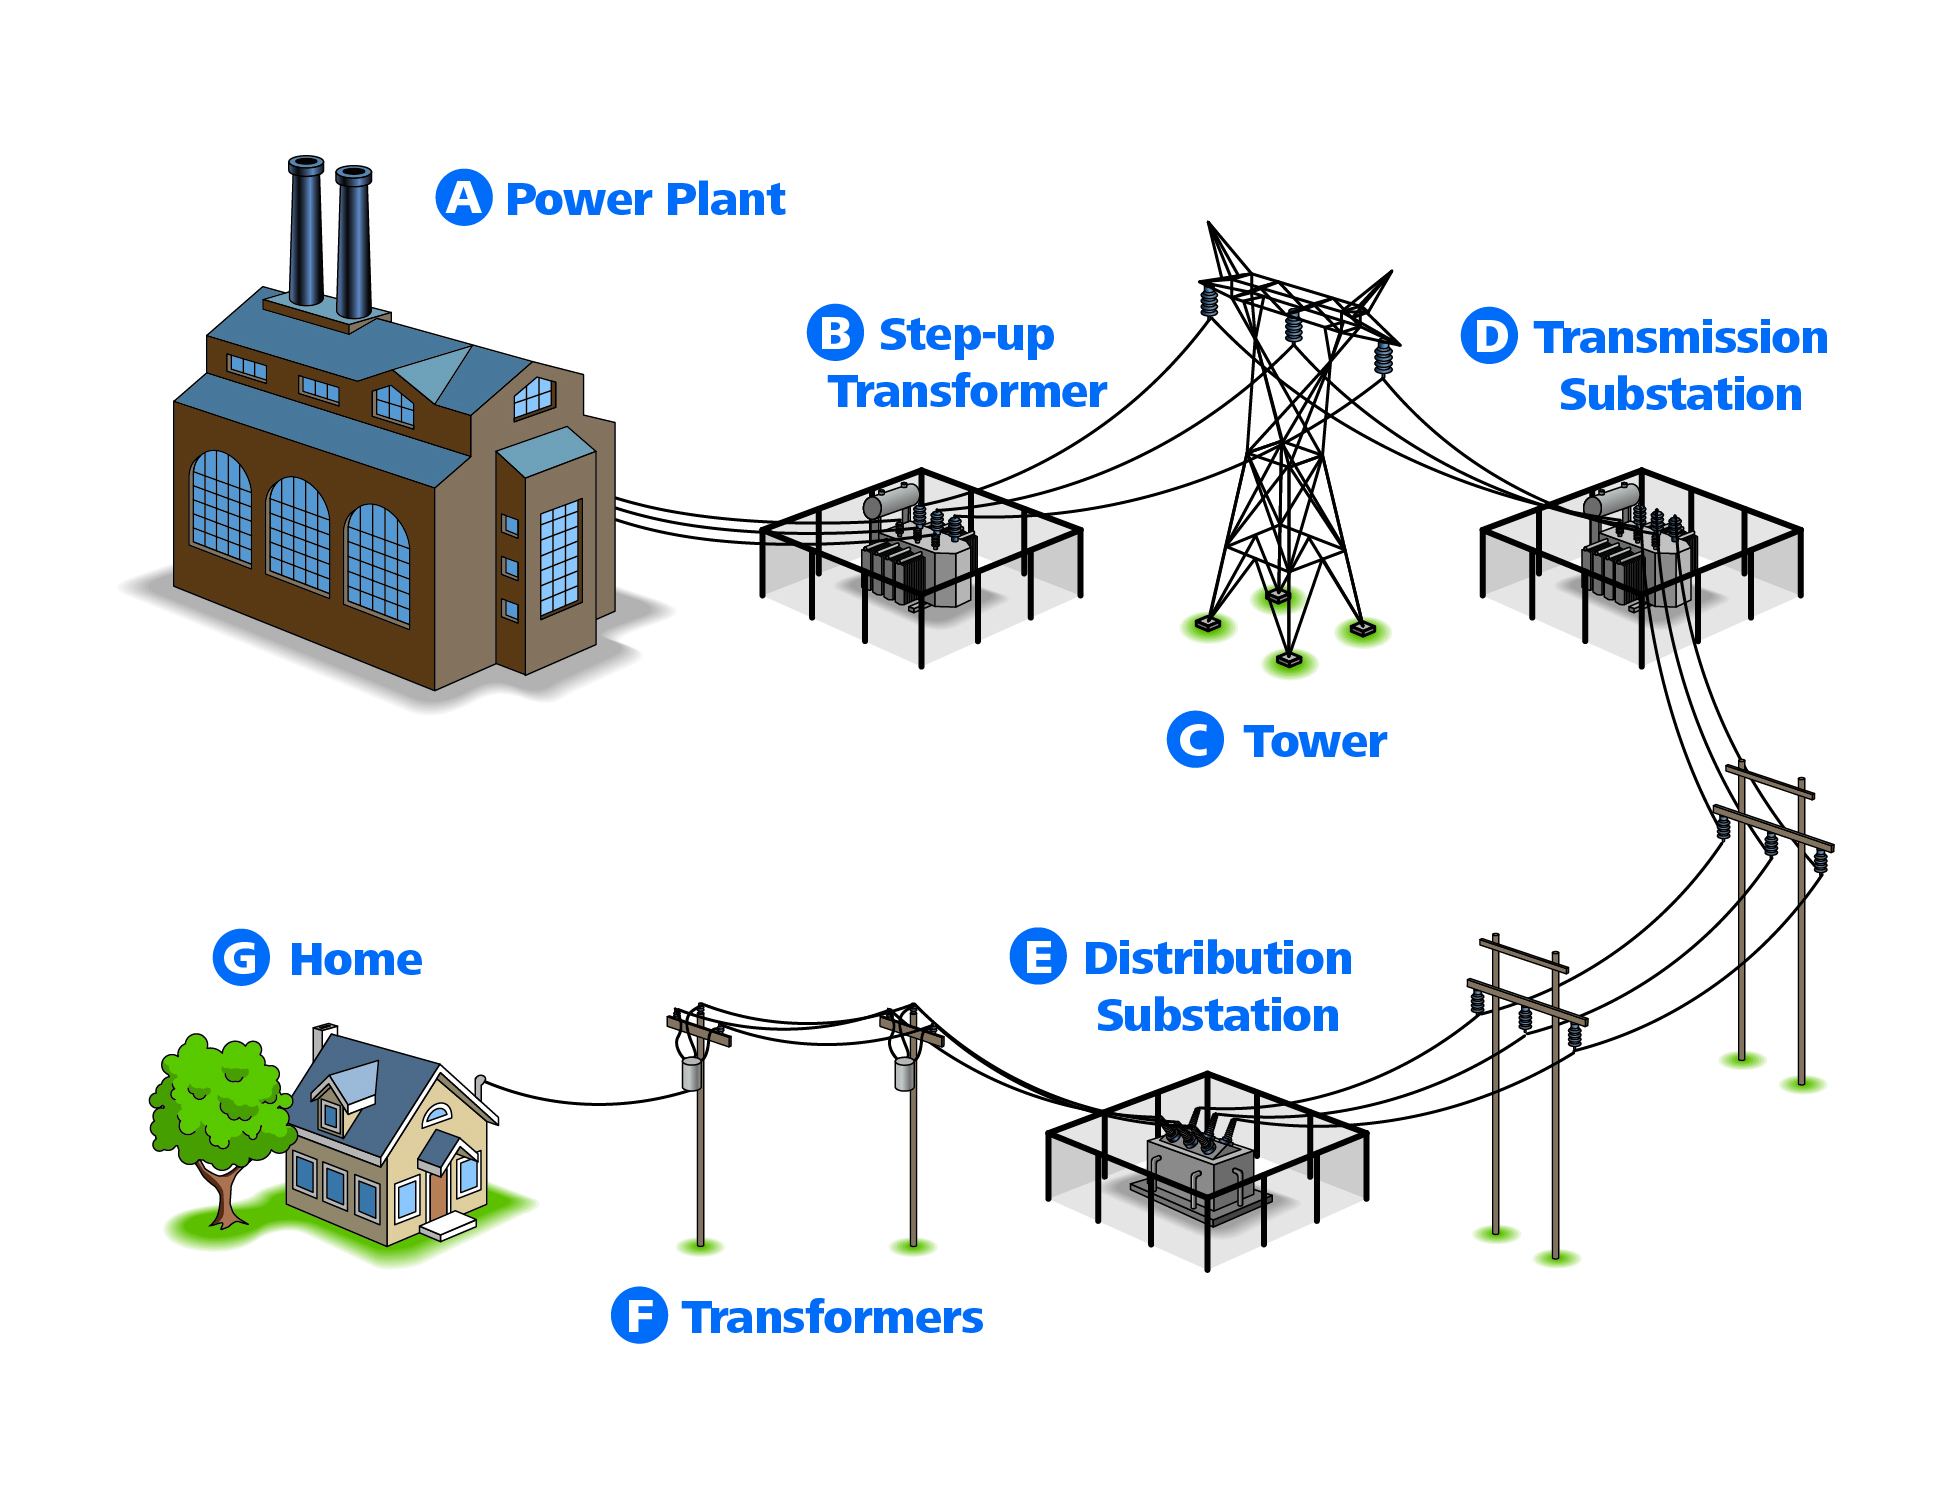 Steps in the power transmission process to get power from generation to your home, as described above